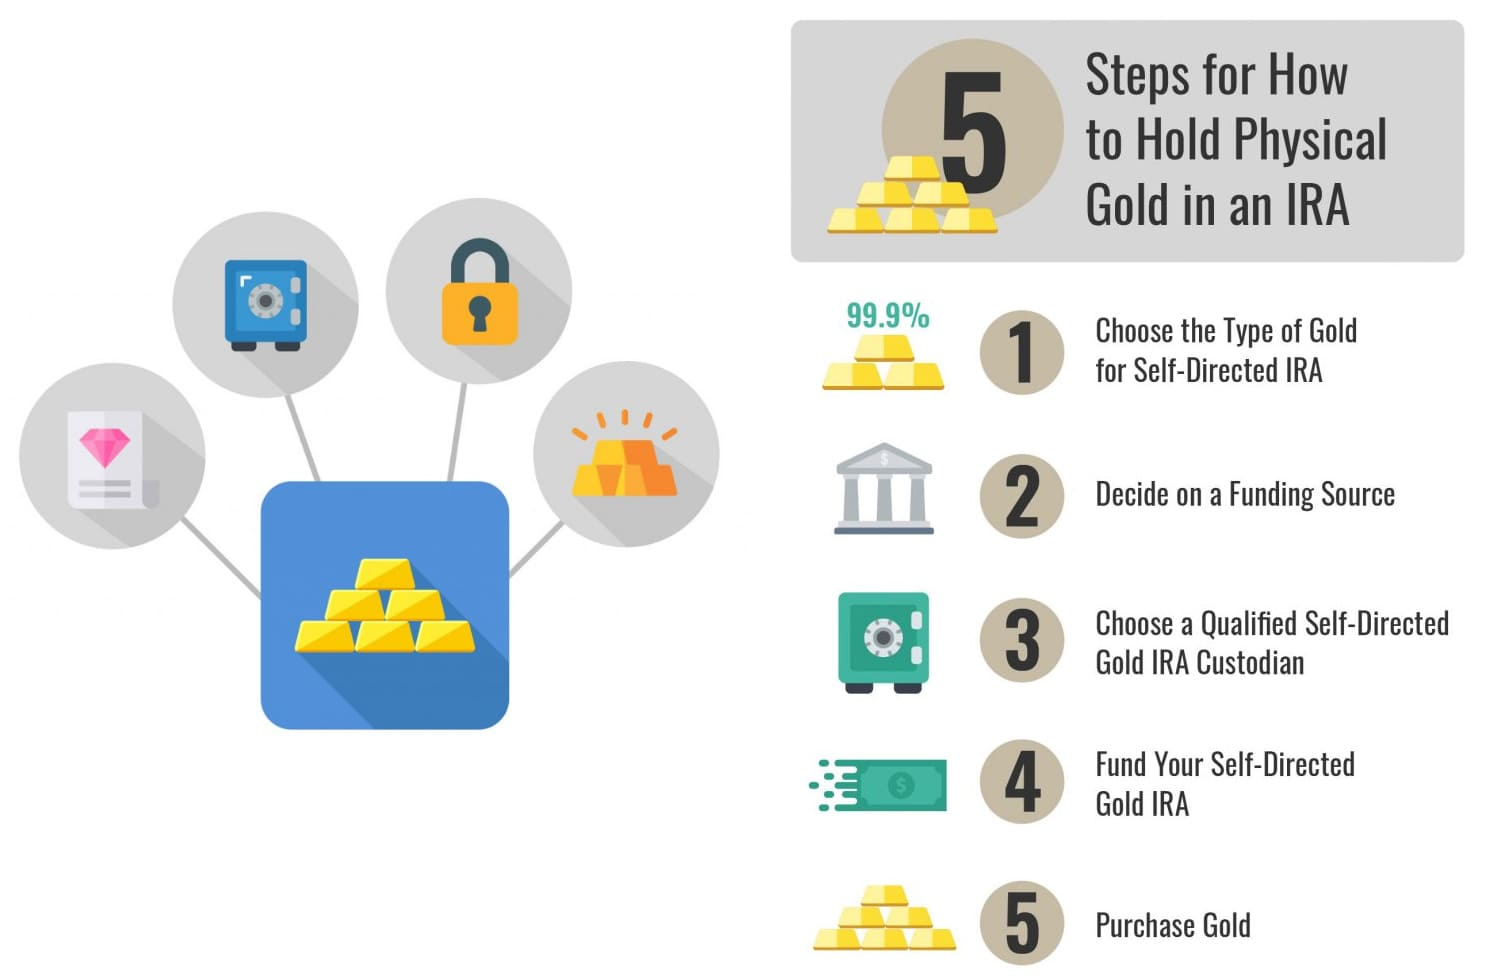 Why Choose a Self-Directed Gold IRA with Goldco?